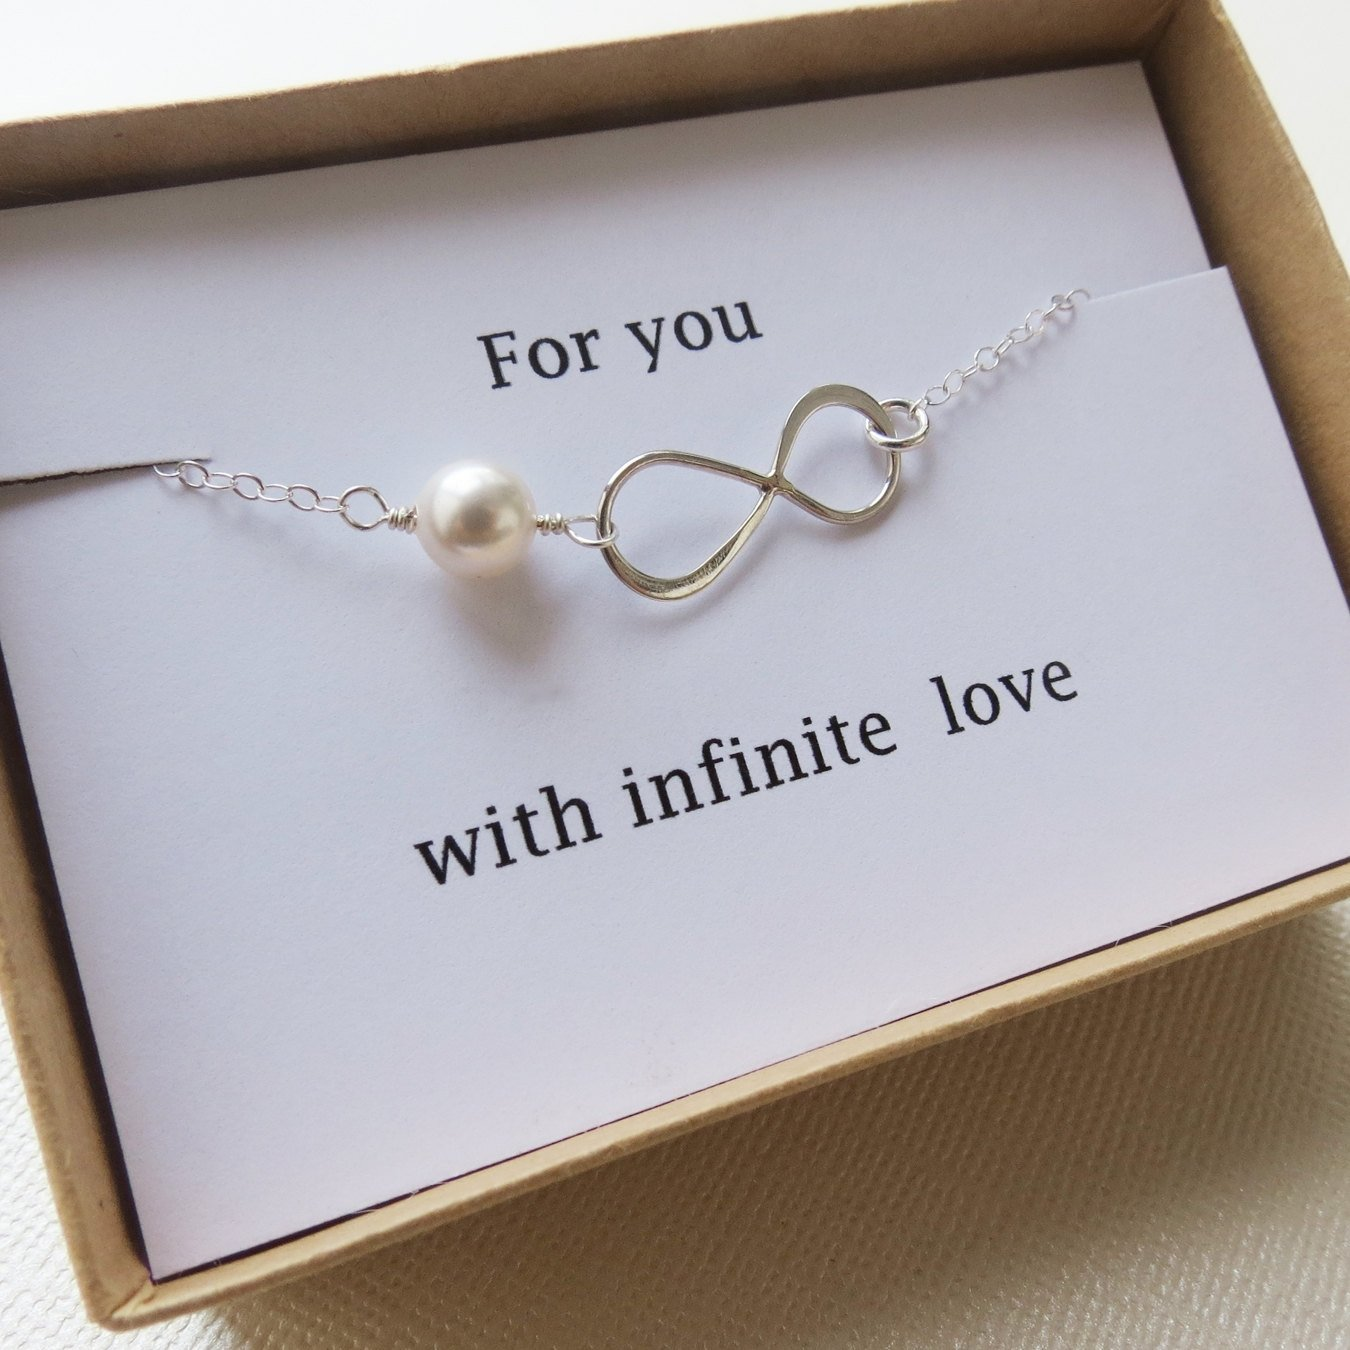 10 Attractive Christmas Gift Ideas For Girlfriend infinity bracelet love holiday gift infinity jewelry card 4 2020